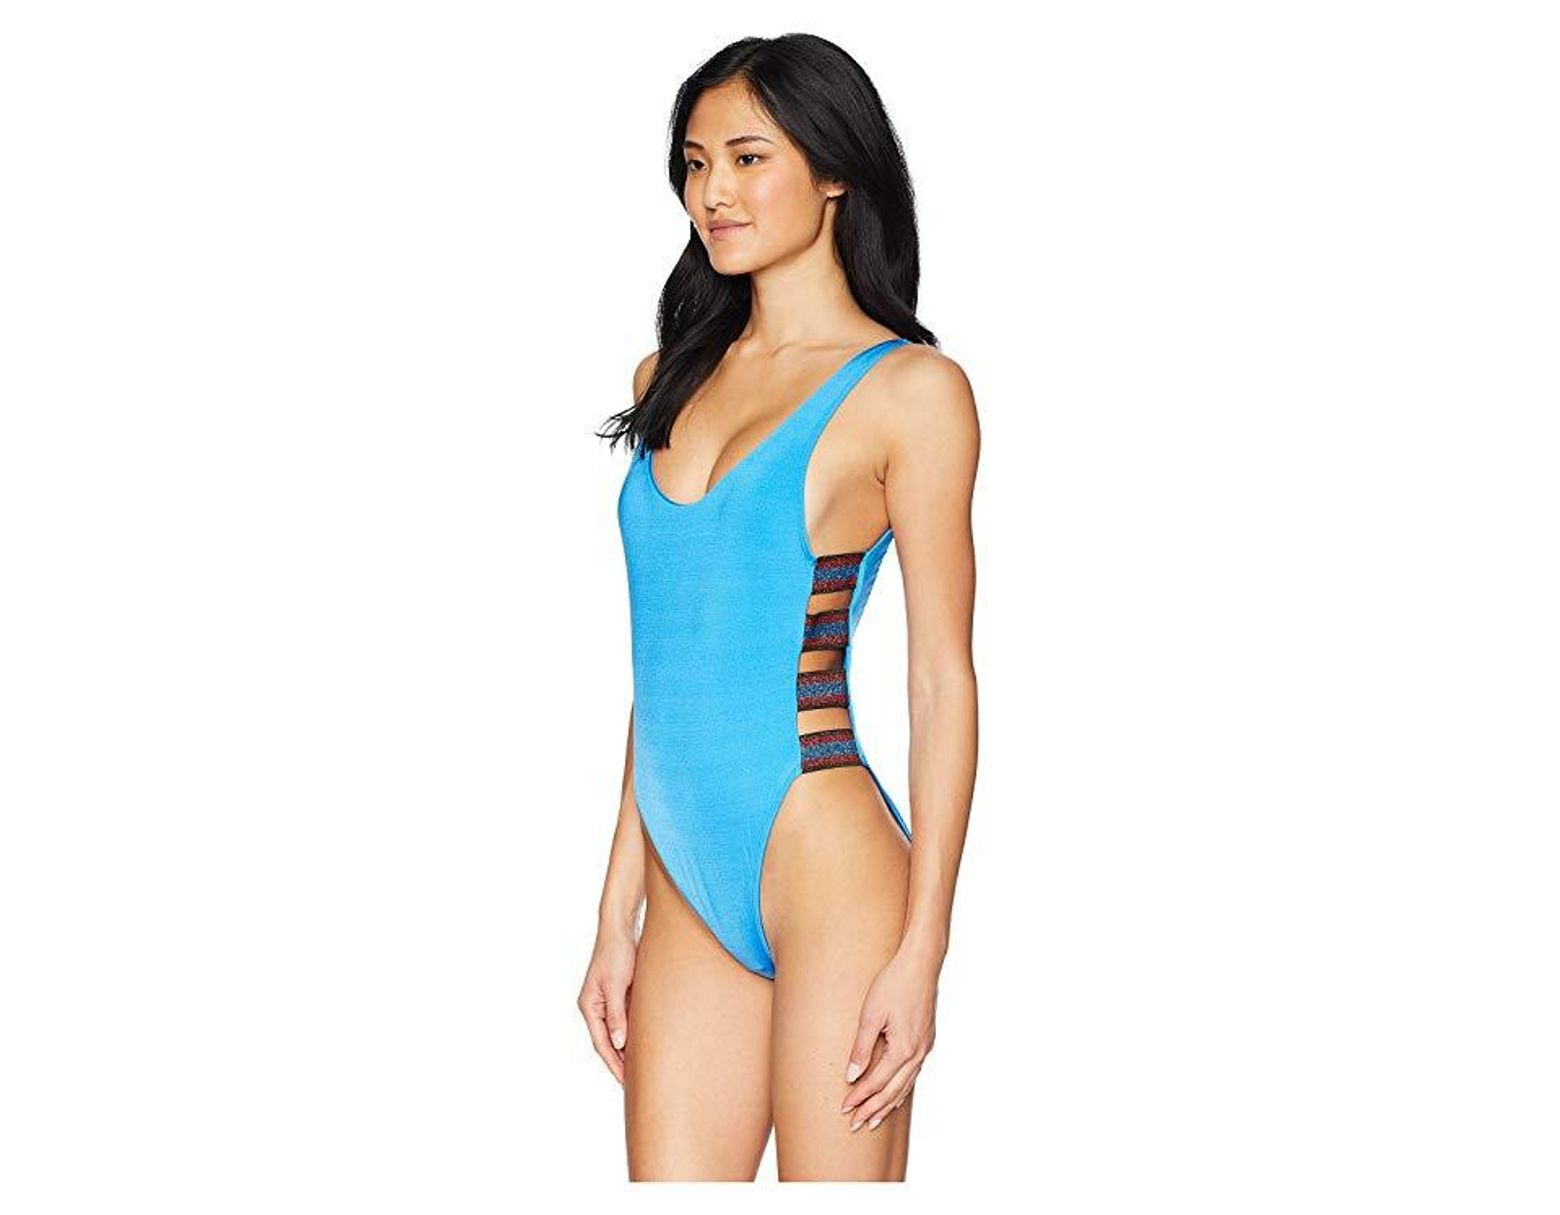 022beb9a2294a The Bikini Lab Route 66 Strappy One-piece Swimsuit (azul) Swimsuits One  Piece in Blue - Save 19% - Lyst